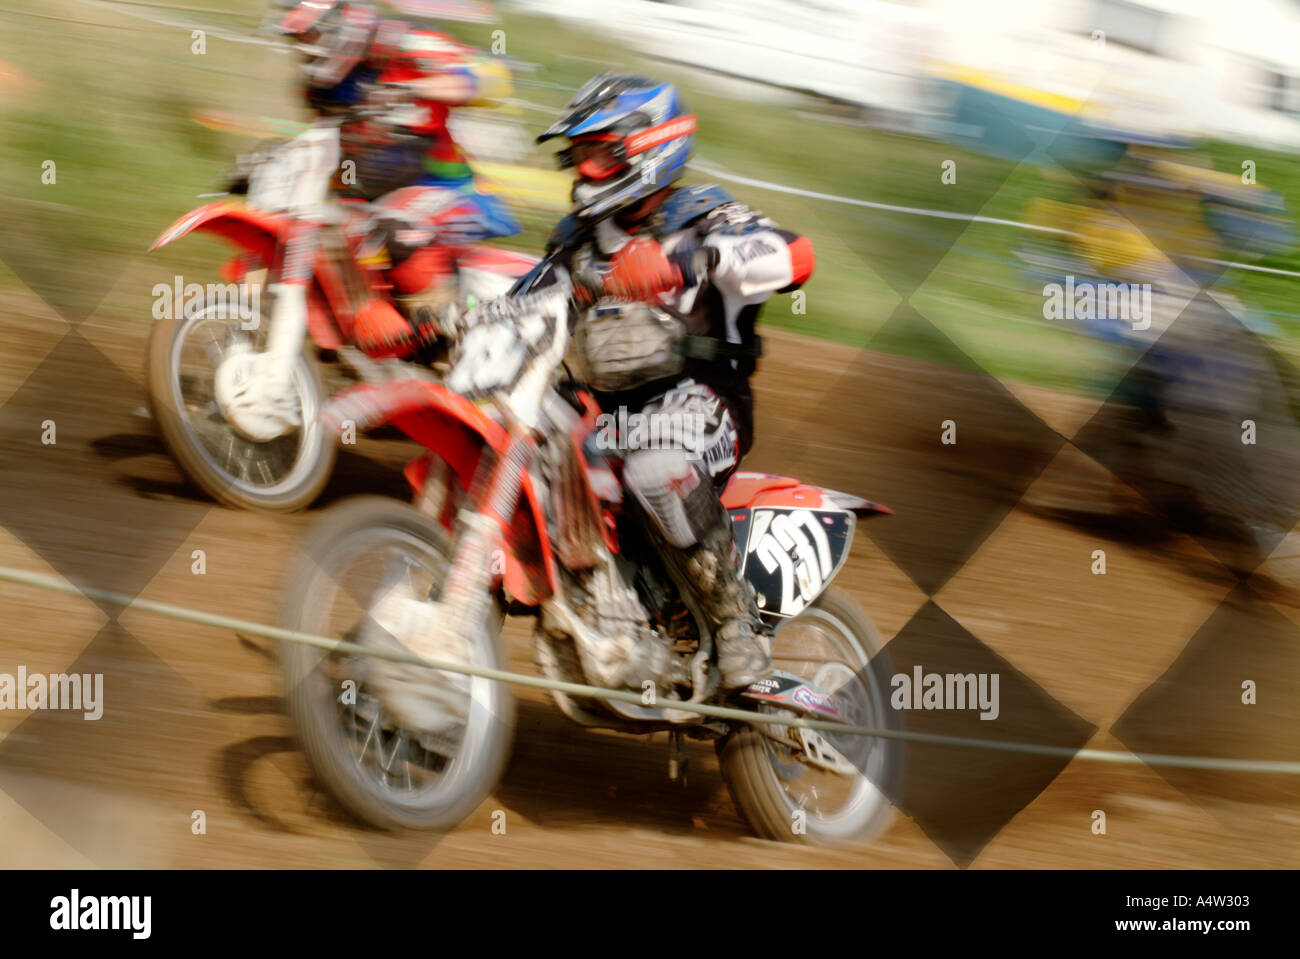 Chequered Flag Win Lose Risk Extreme Sport Motor Cross X Moto Dirt